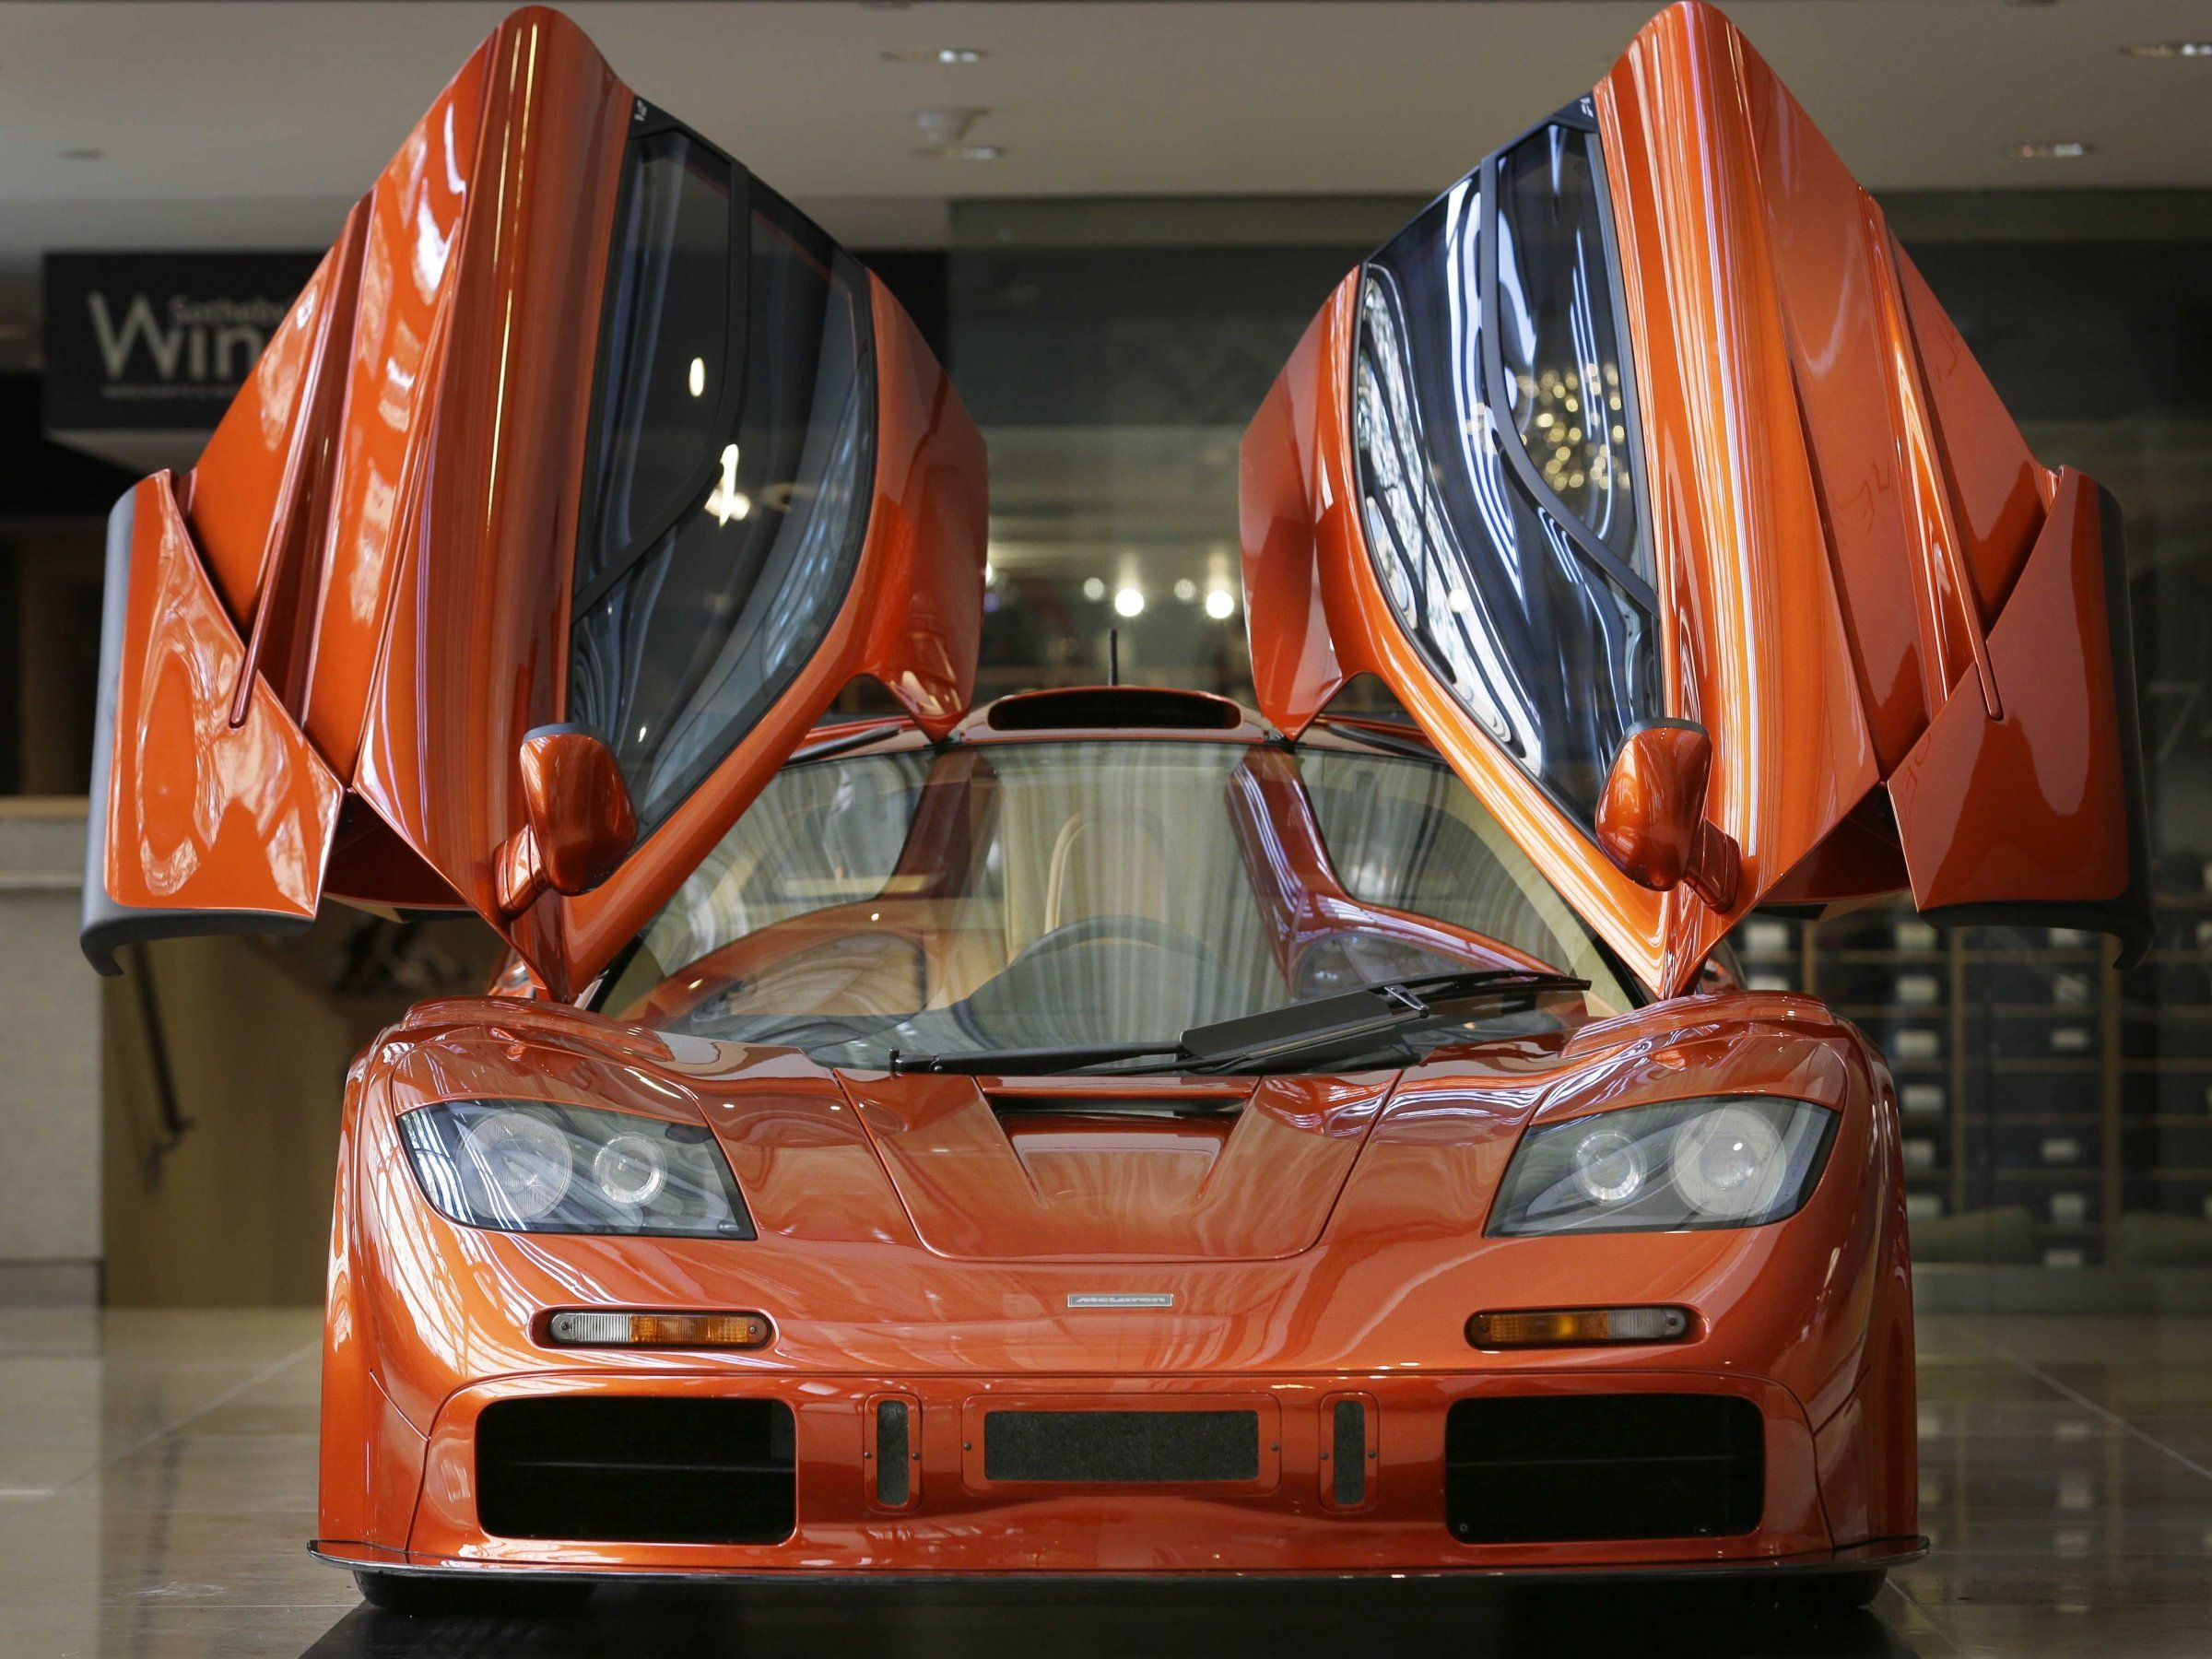 Pin By Packair On Classic Cars Mclaren Cars Mclaren F1 Cool Car Pictures